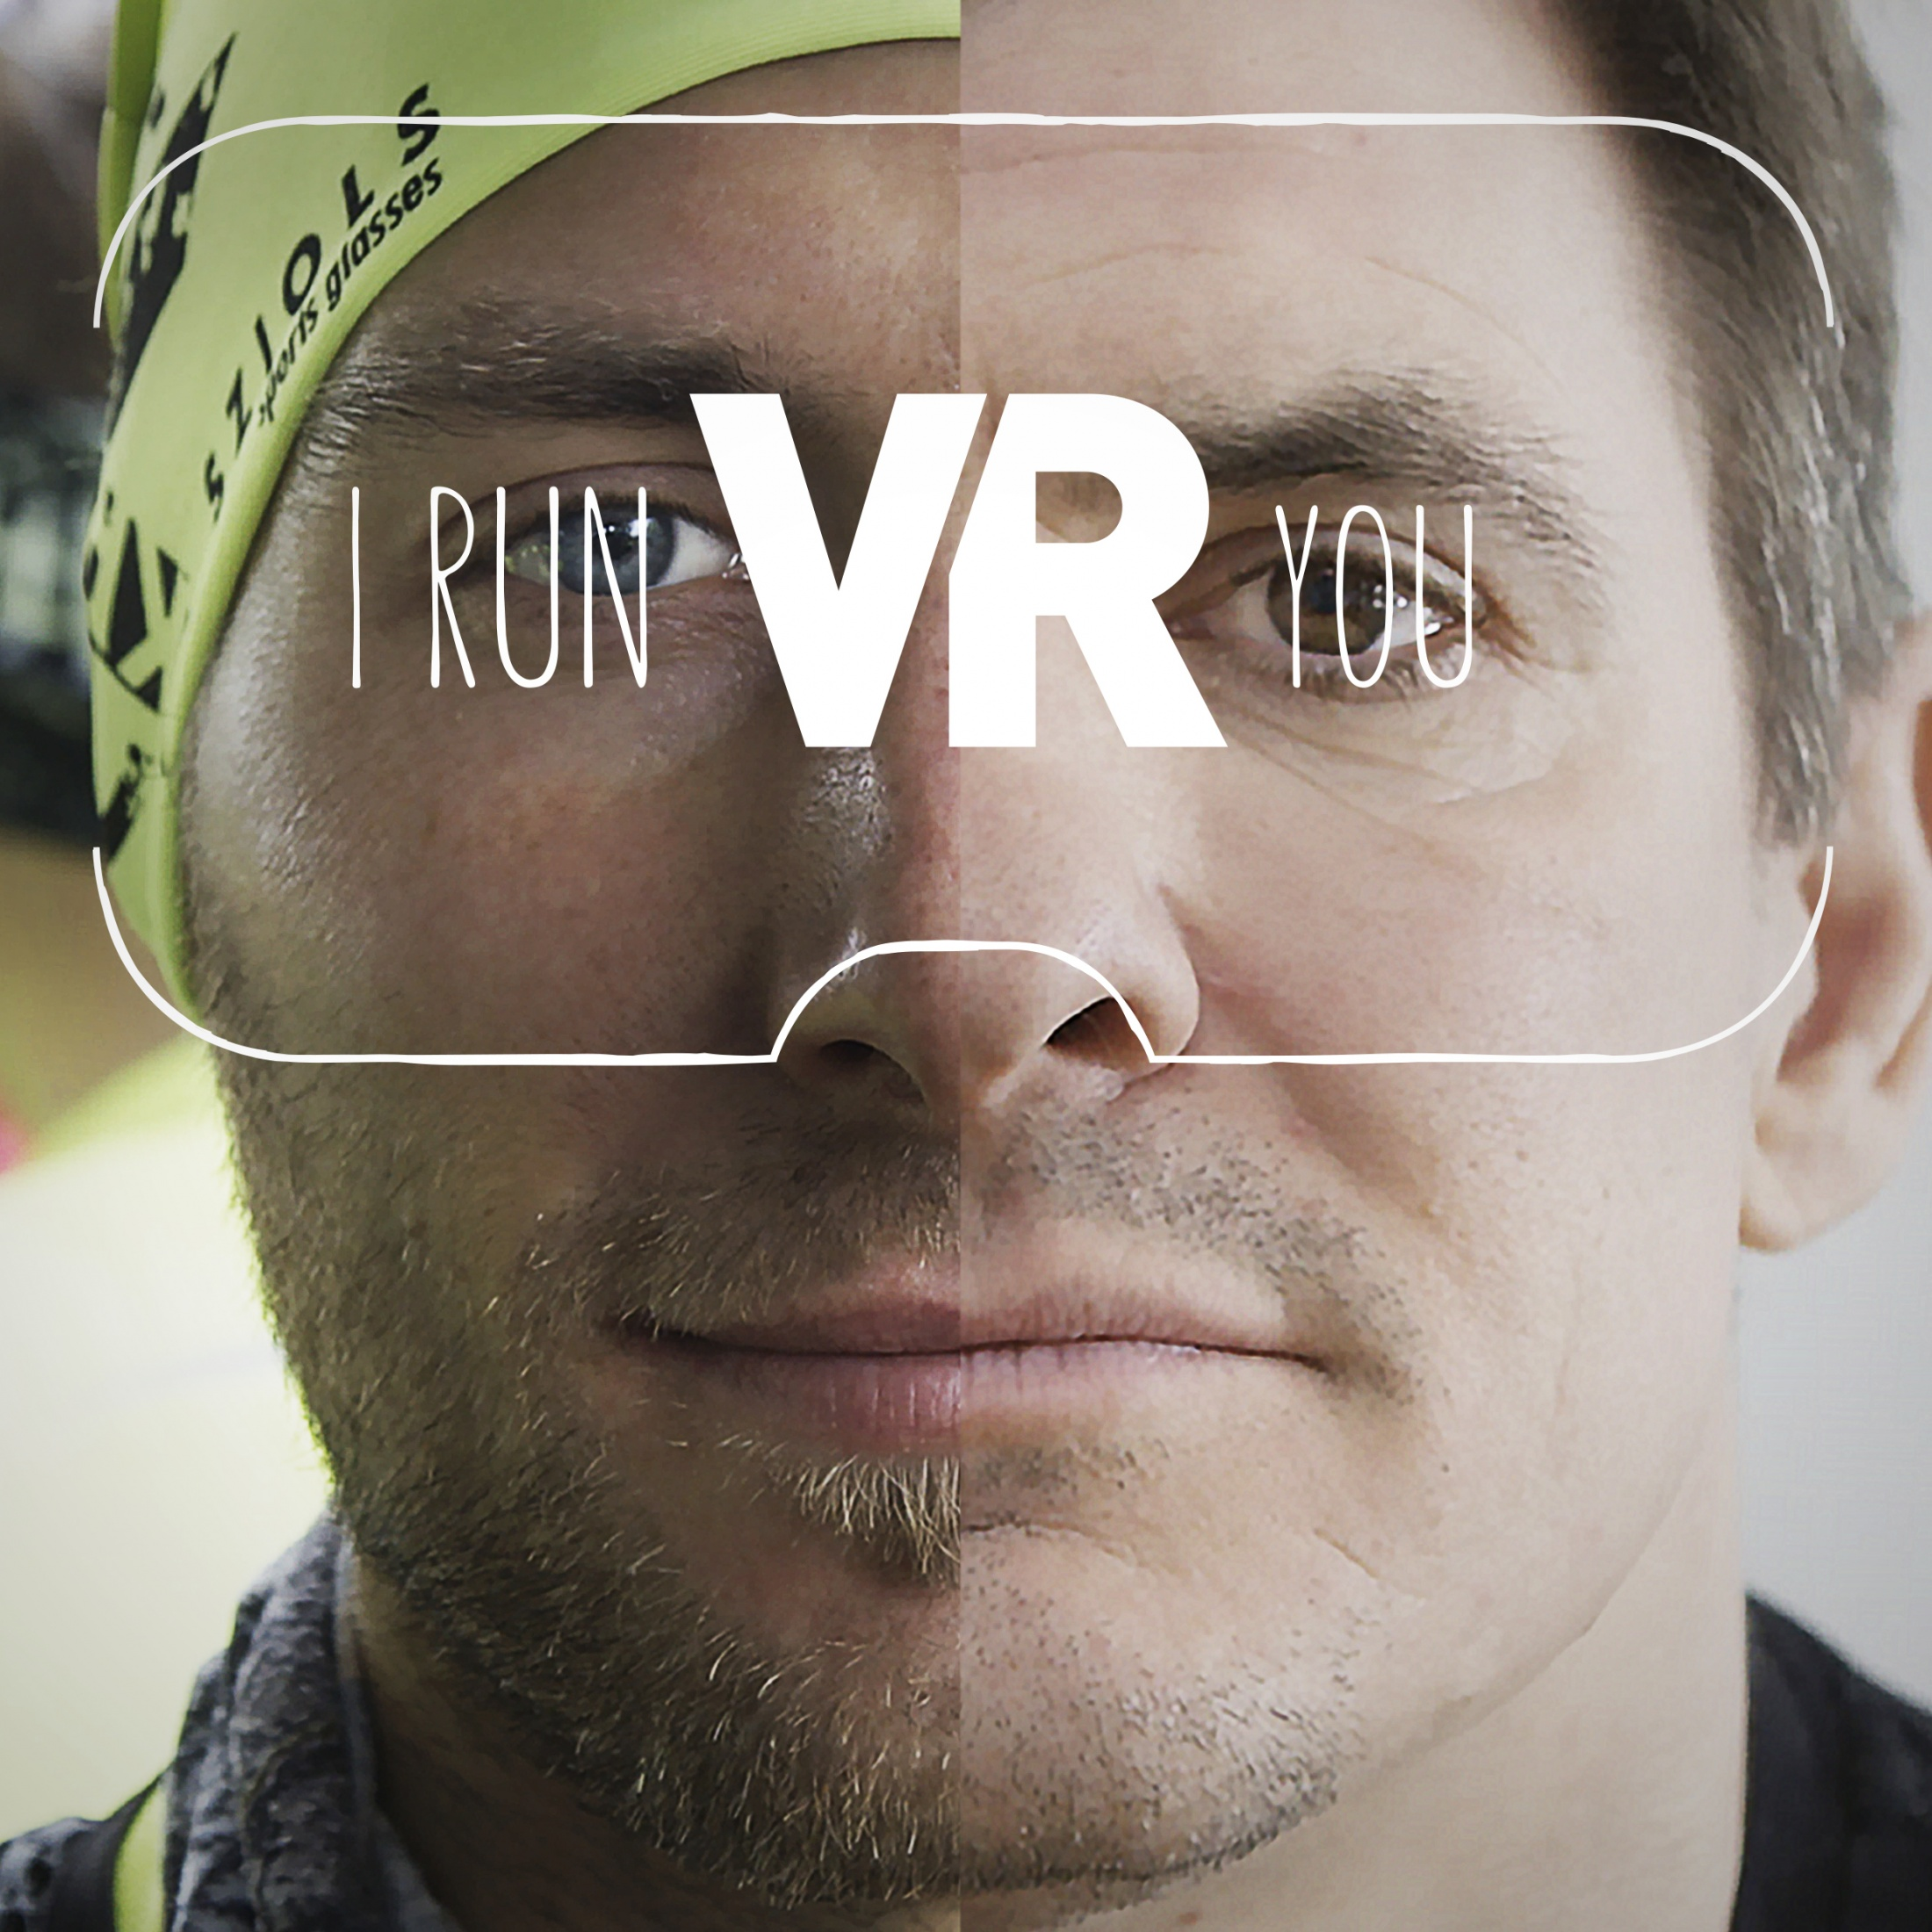 Image Media for I RUN VR YOU